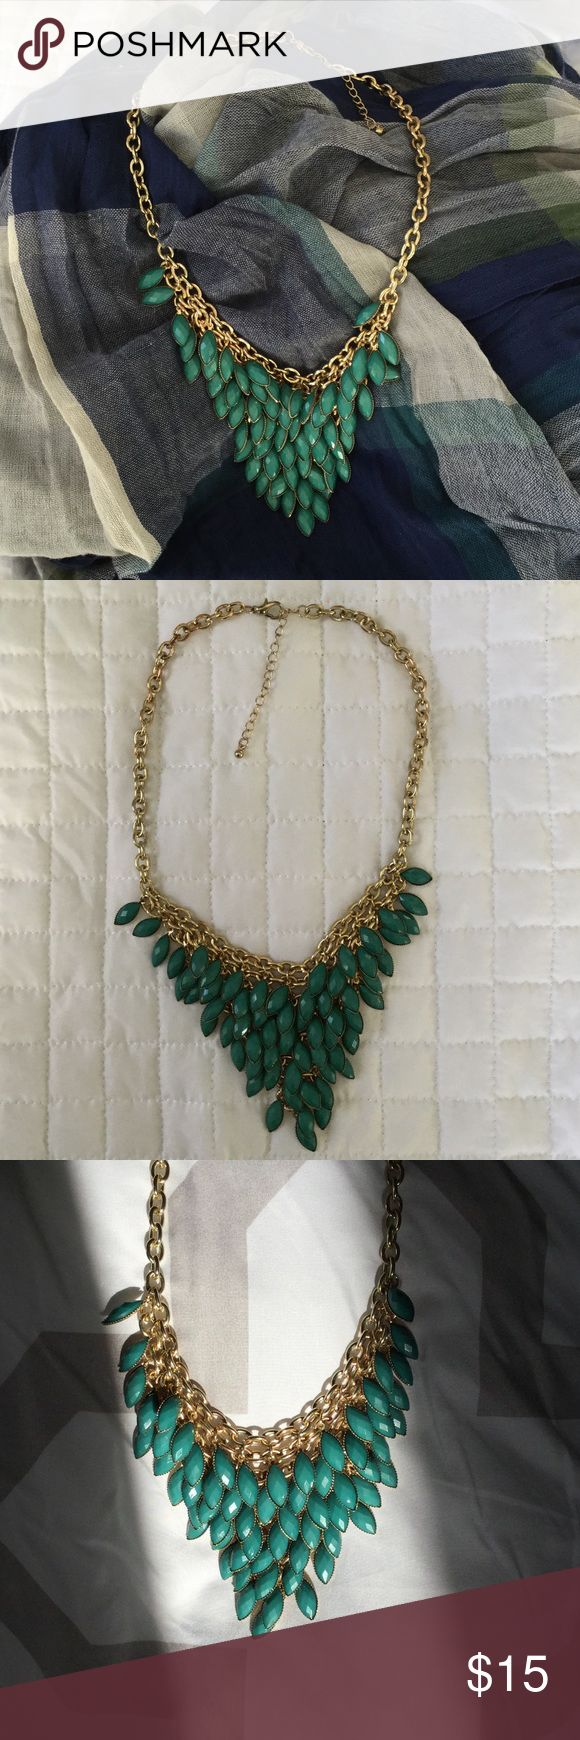 Green statement necklace Classy statement necklace Jewelry Necklaces